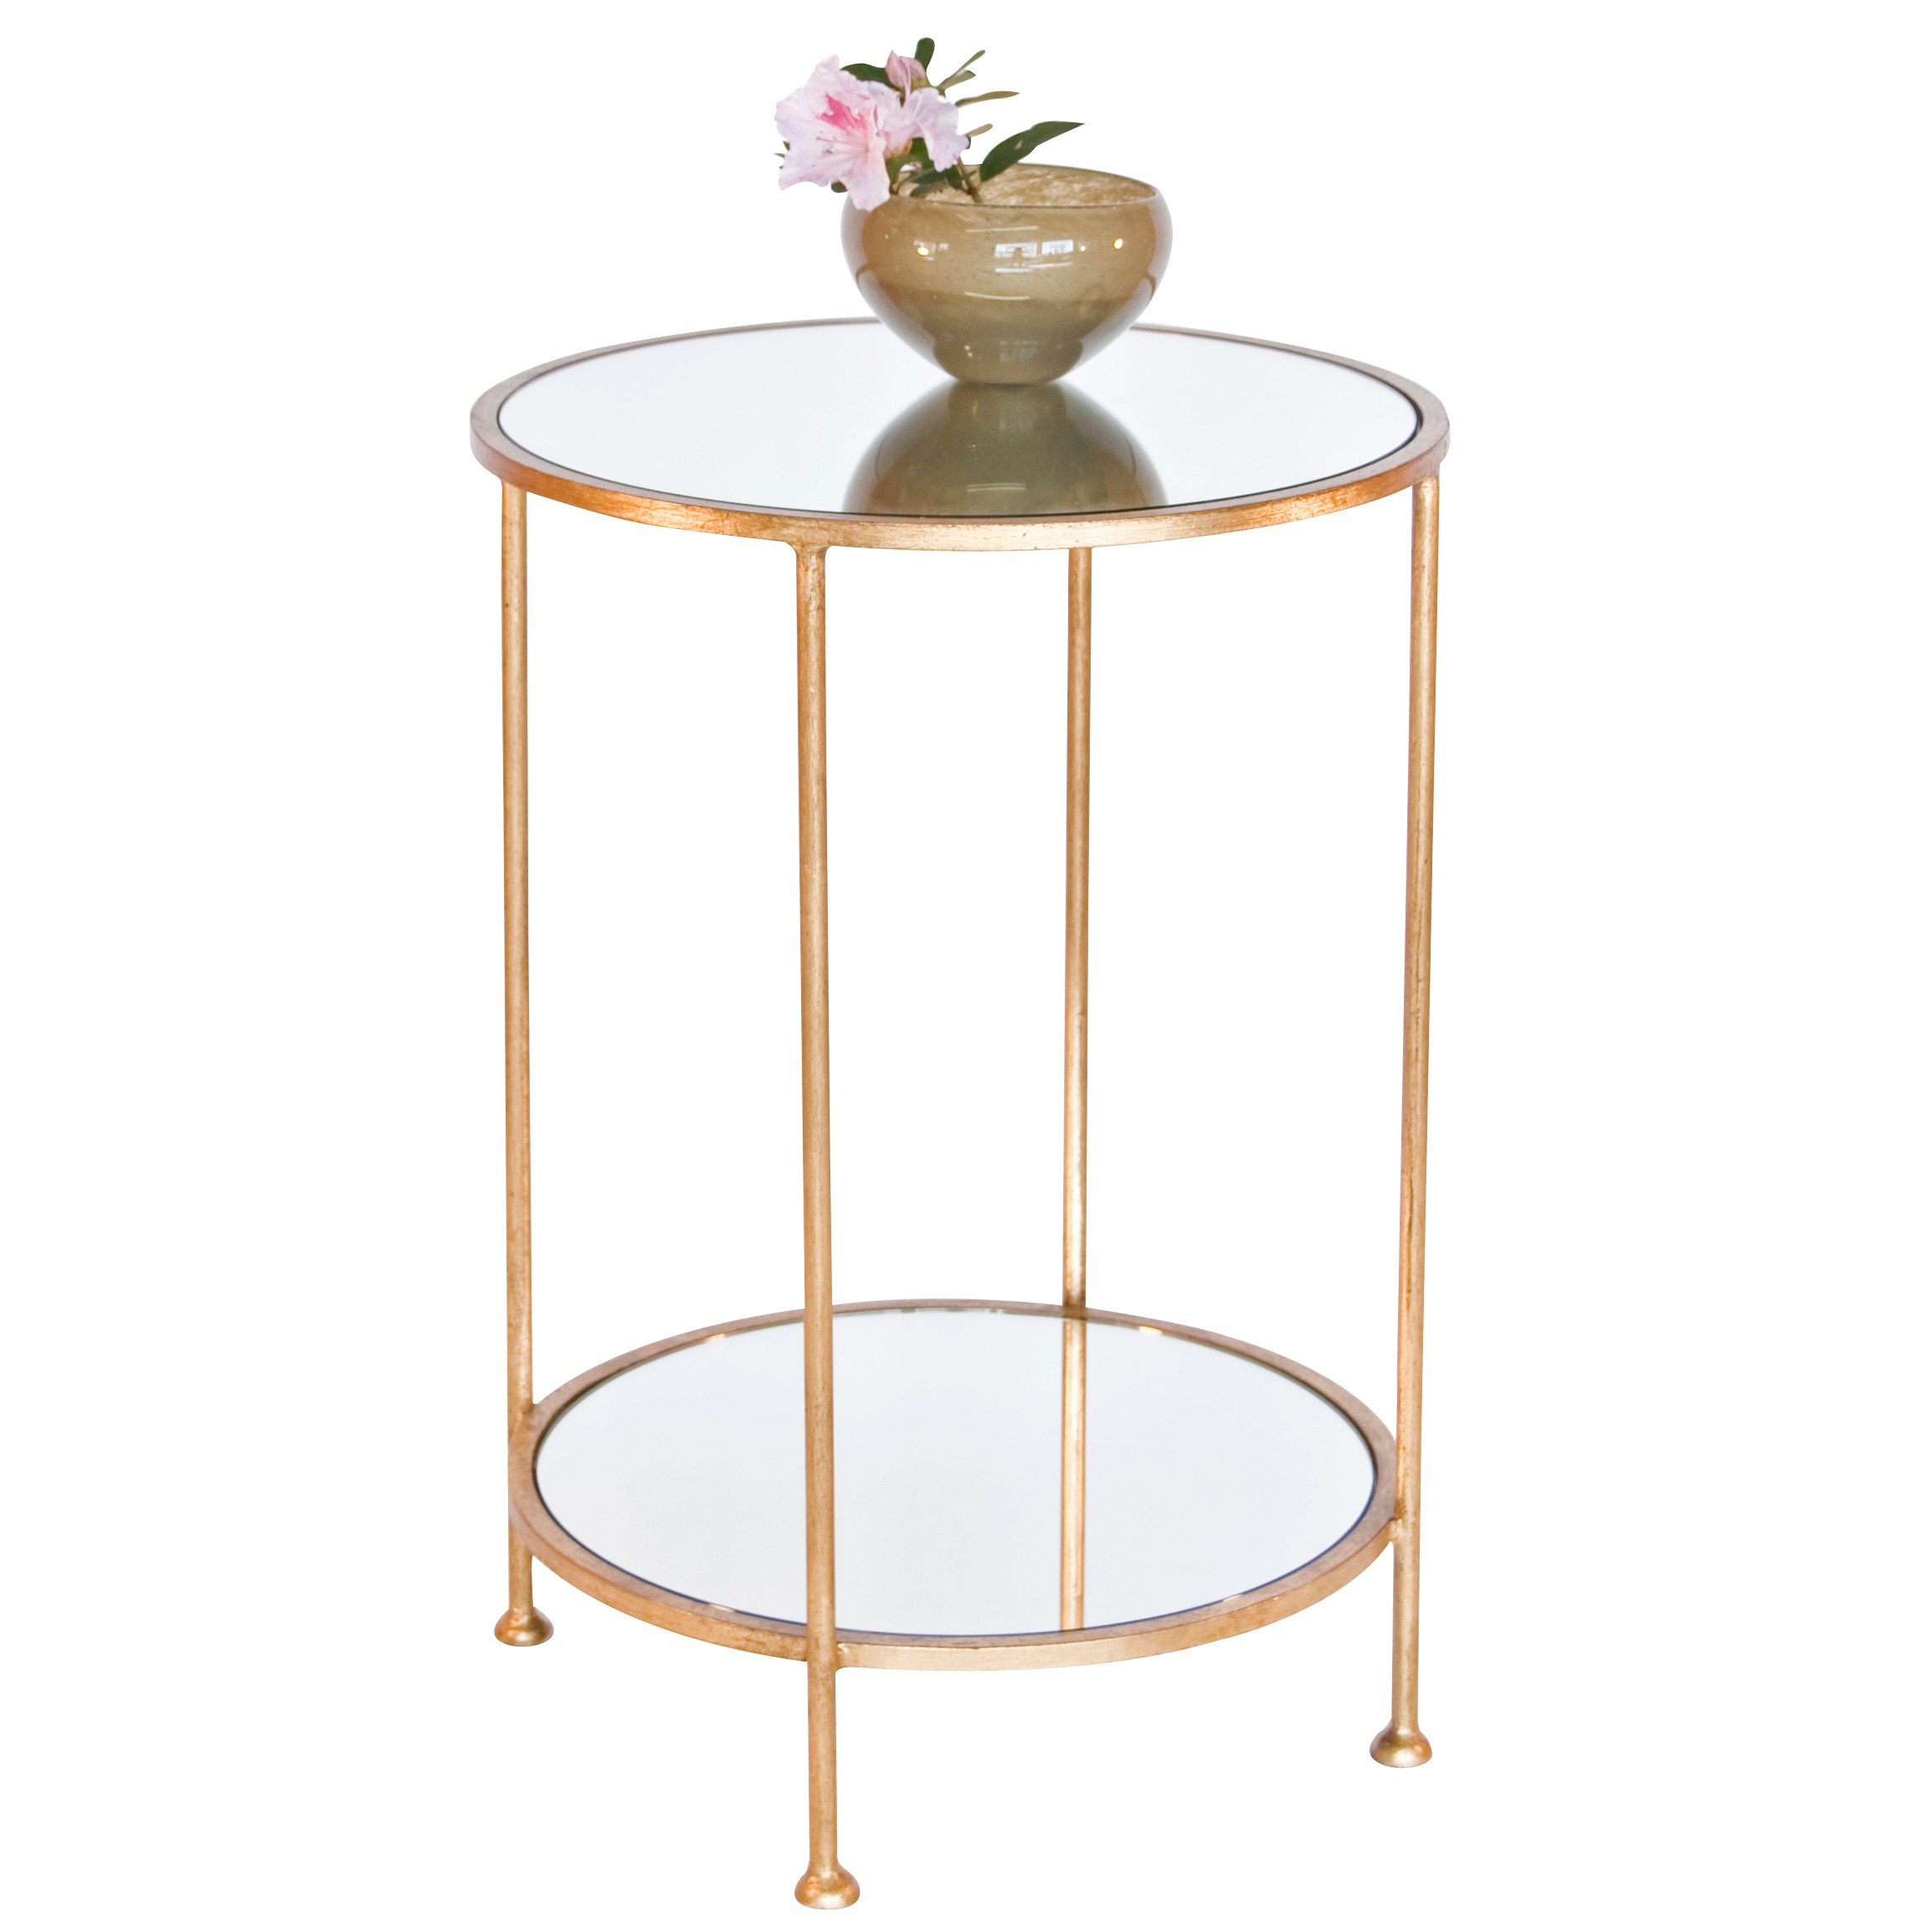 amazing small metal accent table with coffee inspiration worlds away chico tier gold leaf side mirror top outdoor bar height malm nightstand rattan pottery barn square pink